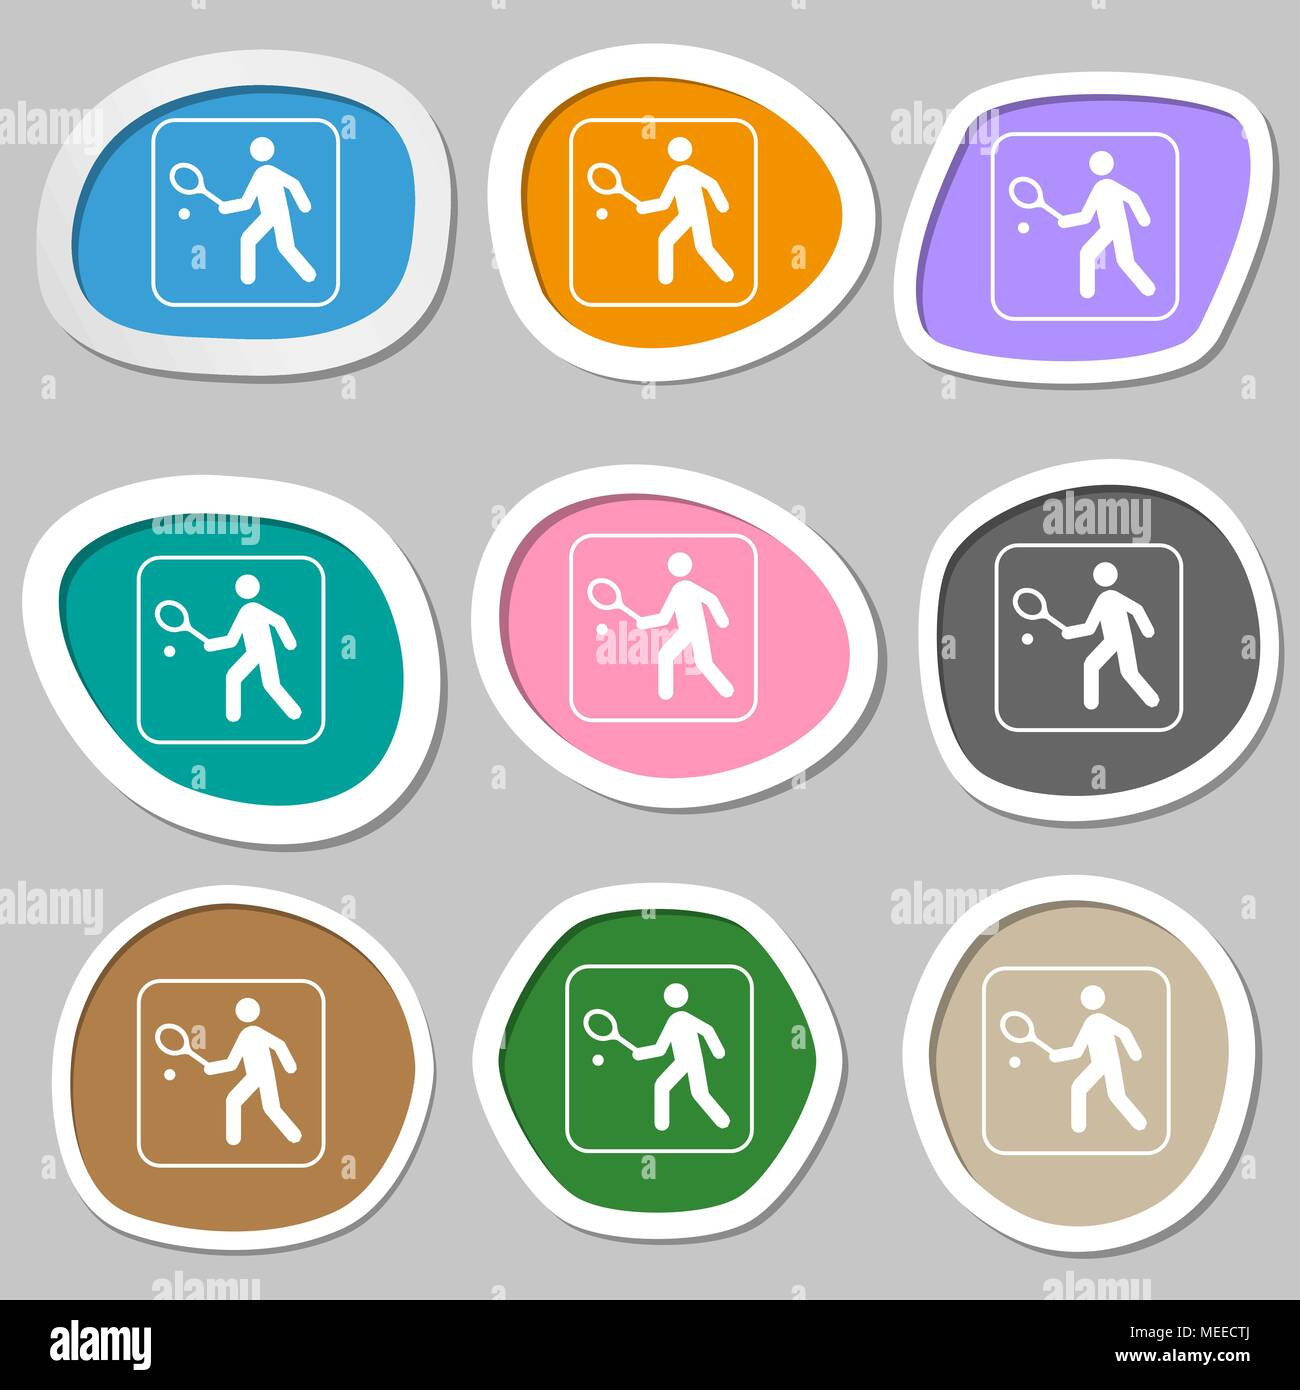 Tennis player symbols. Multicolored paper stickers. Vector illustration - Stock Image